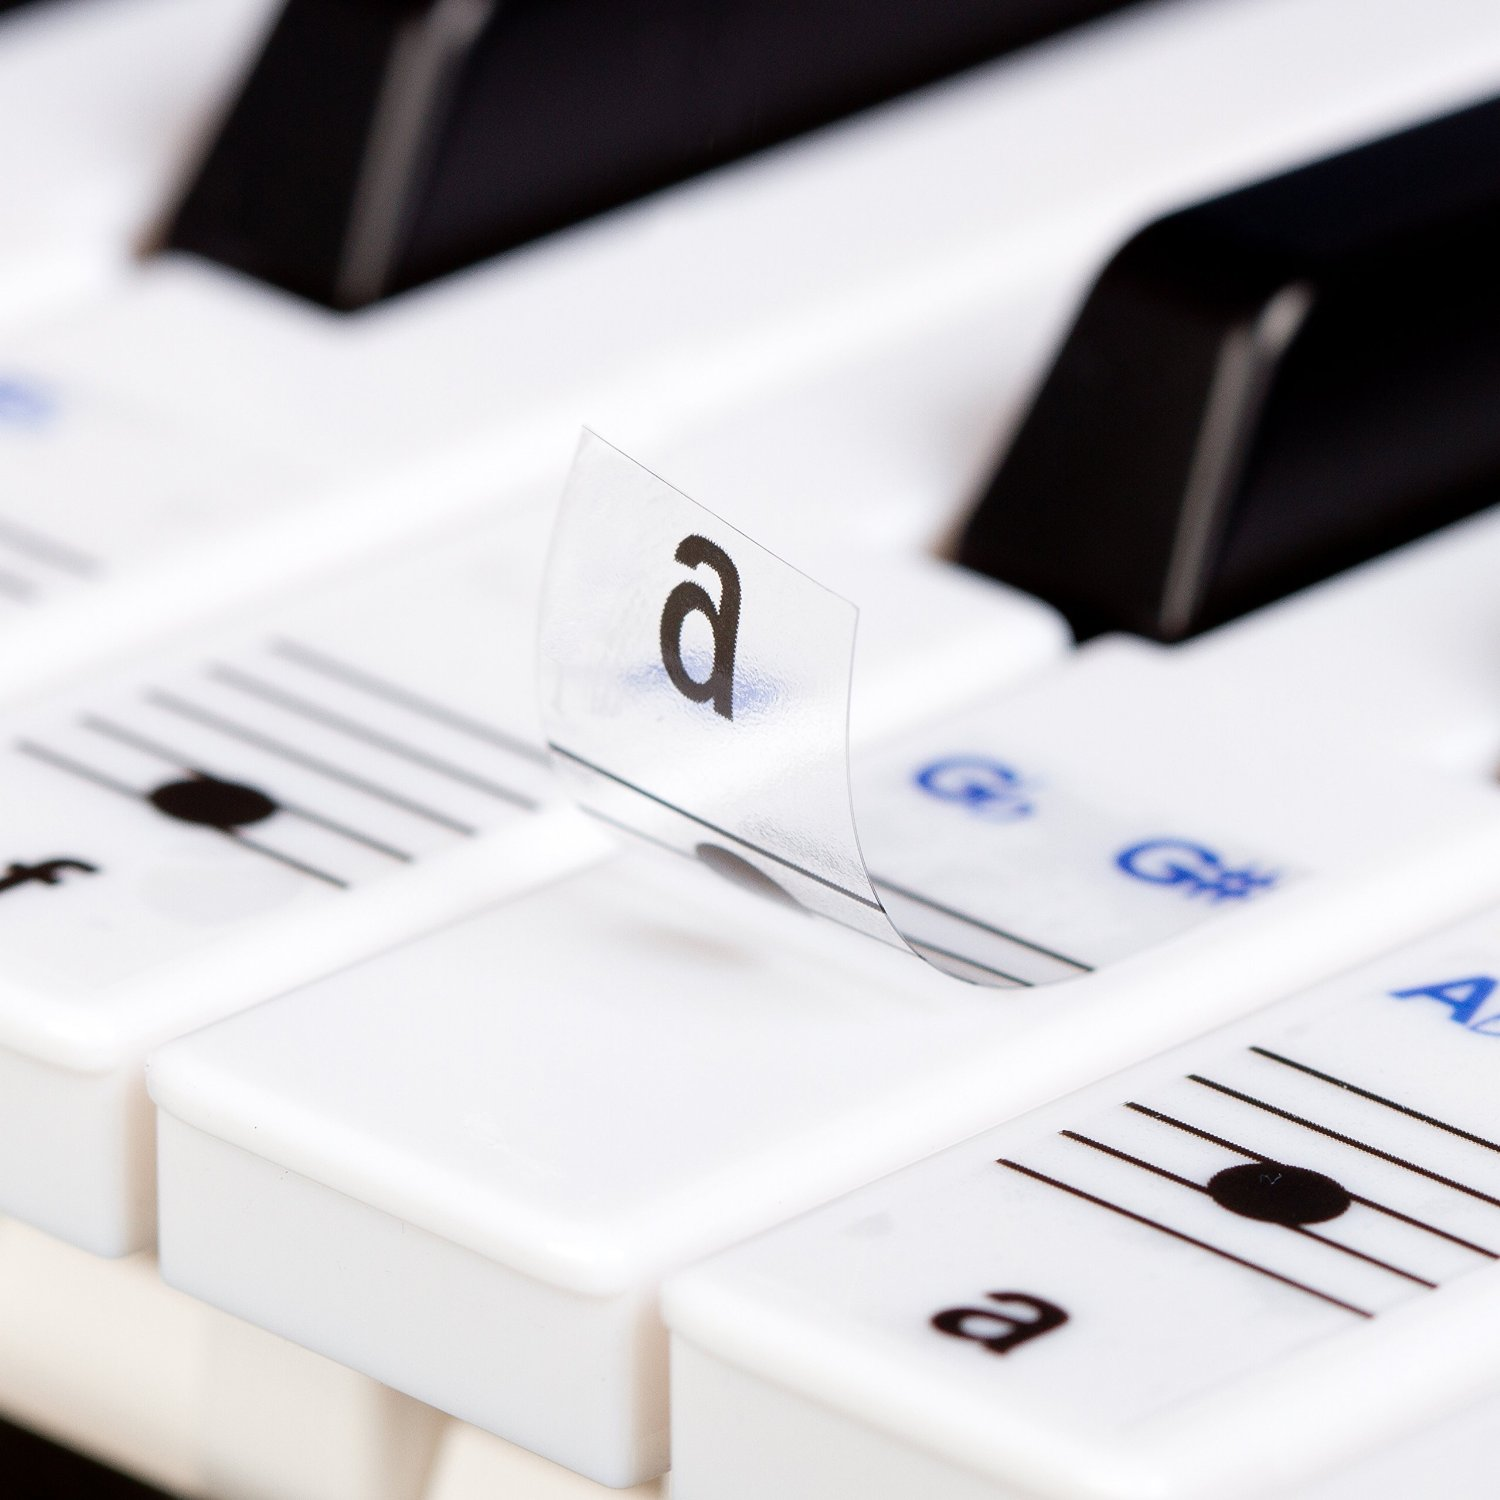 Keysies Transparent Plastic Removable Piano and Keyboard Note Stickers